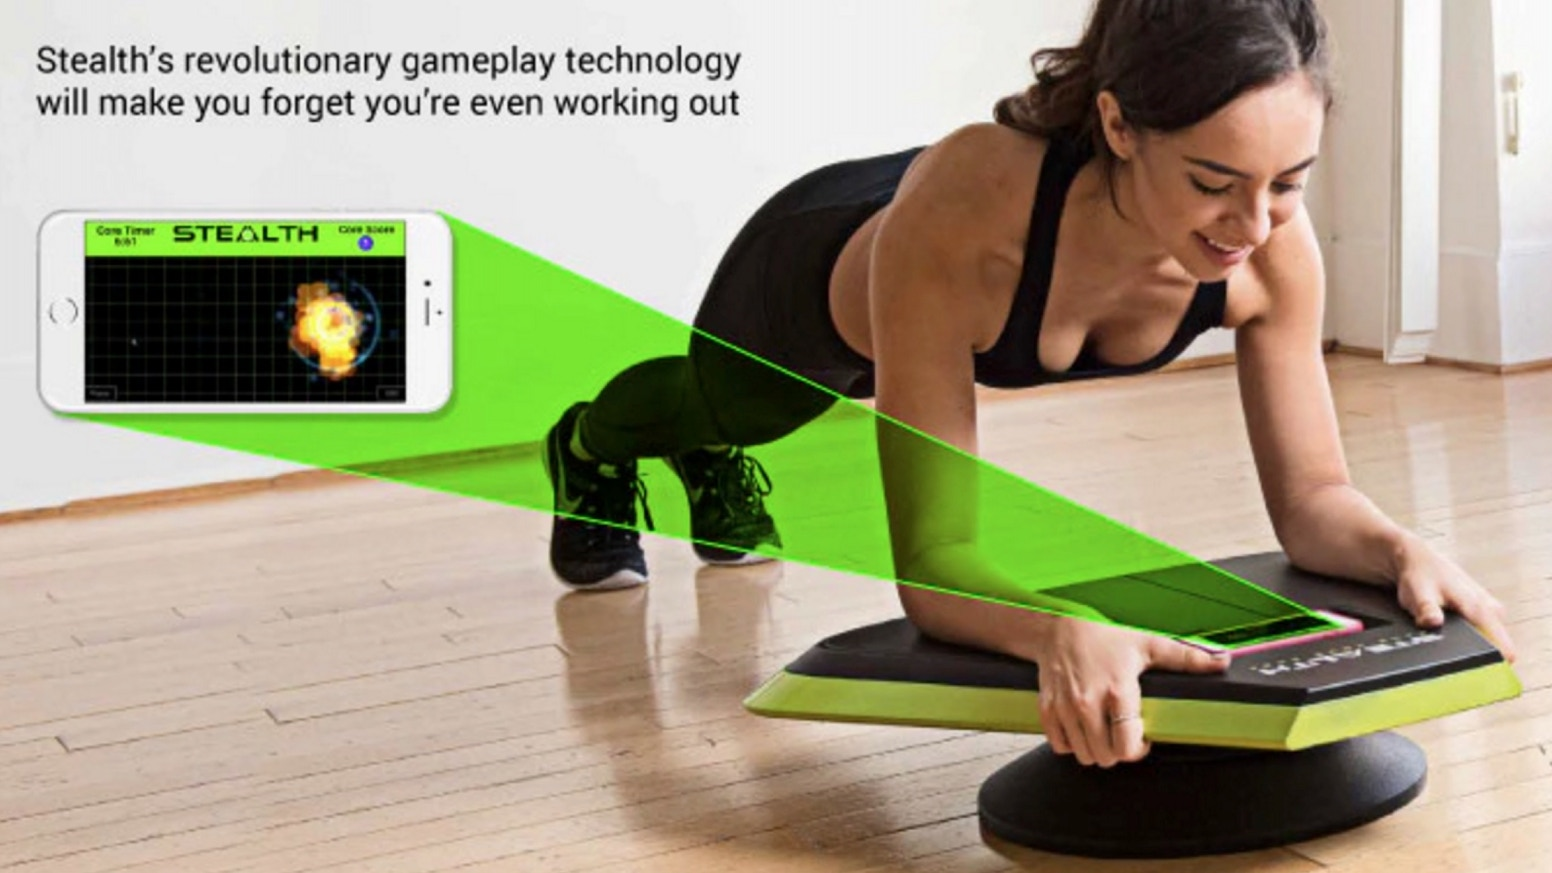 Stealth turns your body into a joystick letting you control fun mobile games with core training movements.